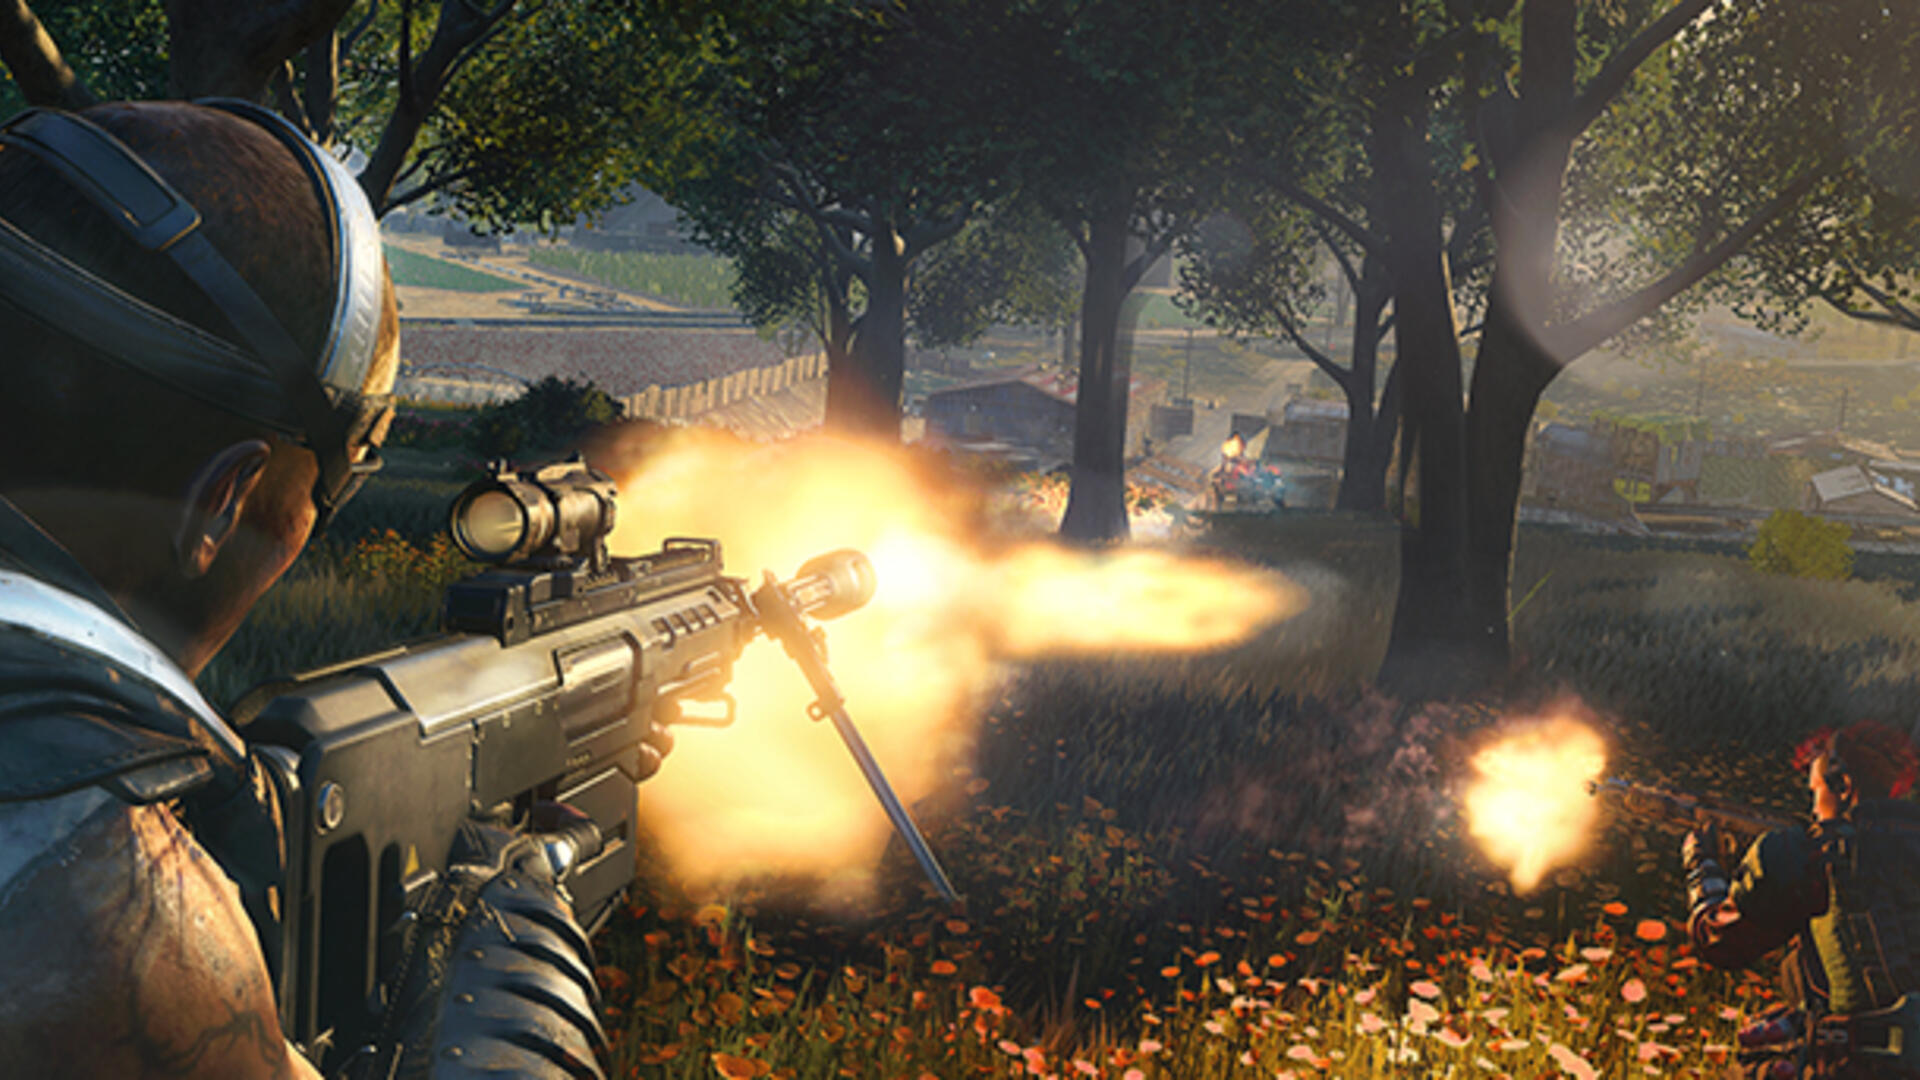 Black Ops 4 is Selling Blackout Battle Royale Mode as a Standalone Game for $30